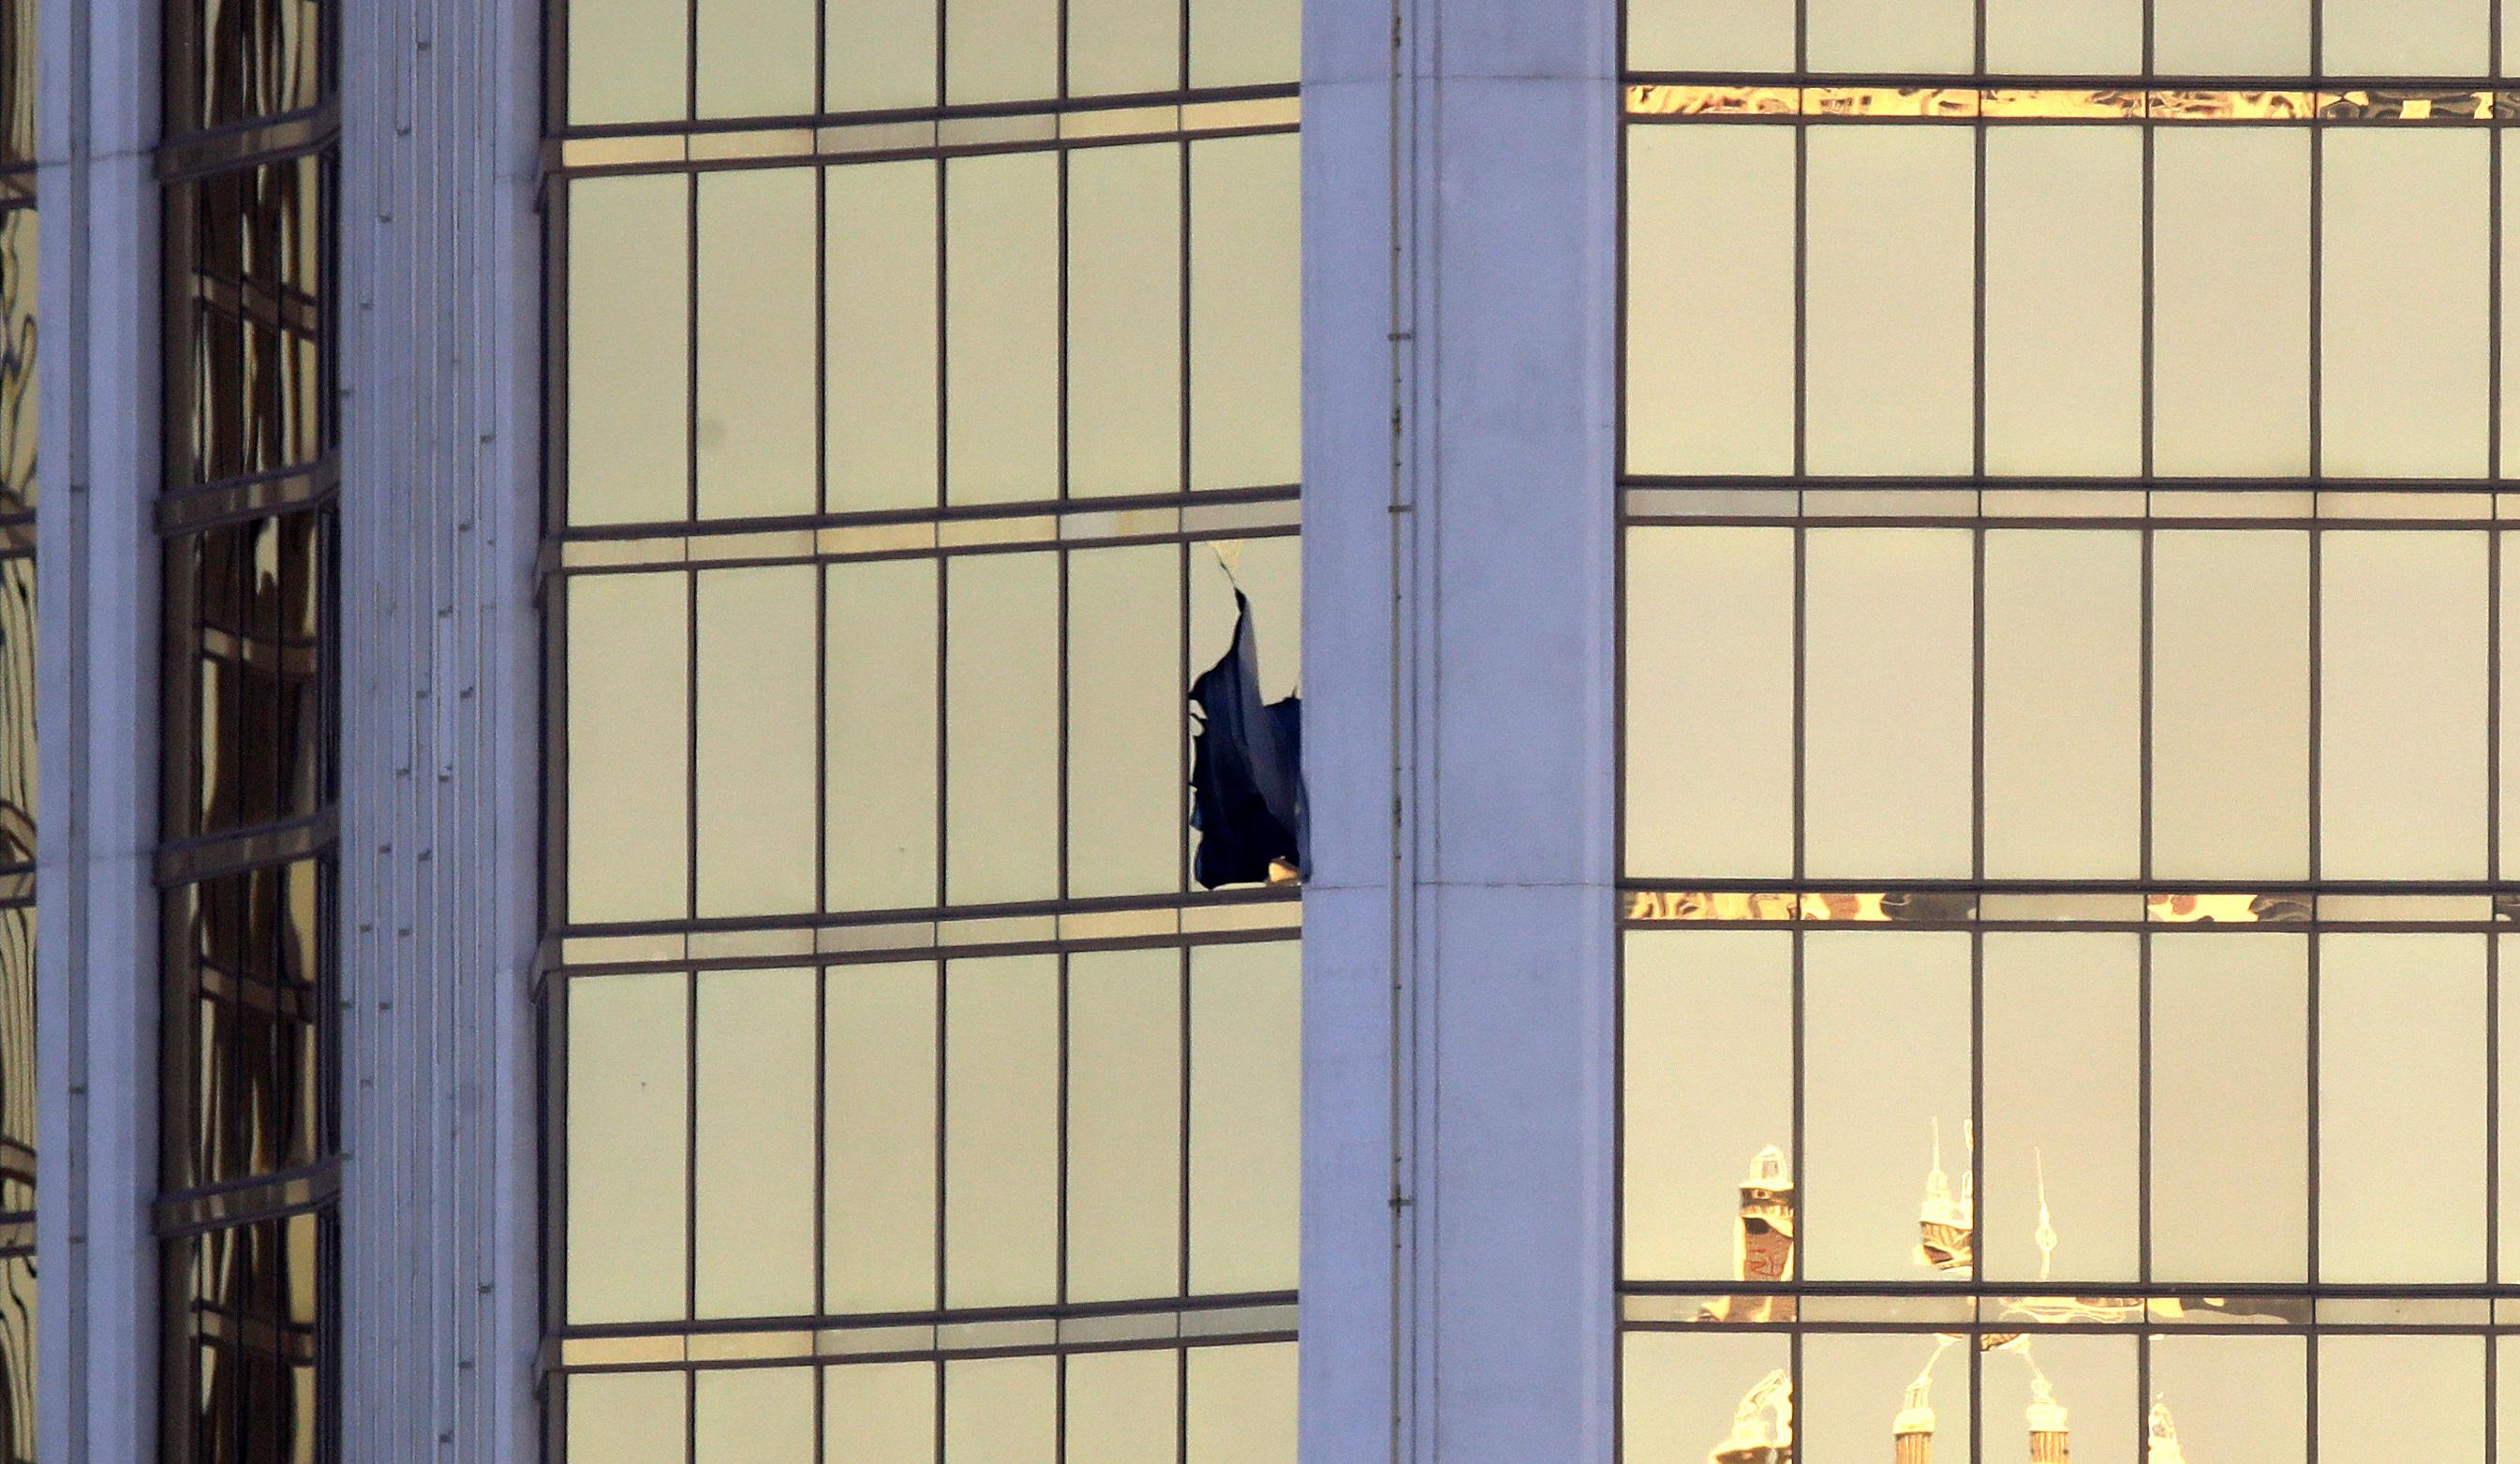 A broken window is seen at the Mandalay Bay resort and casino Monday, Oct. 2, 2017, on the Las Vegas Strip following a mass shooting at a music festival in Las Vegas. Authorities say Stephen Craig Paddock broke the window and began firing with a cache of weapons, killing dozens and injuring hundreds. (AP Photo/Chris Carlson)